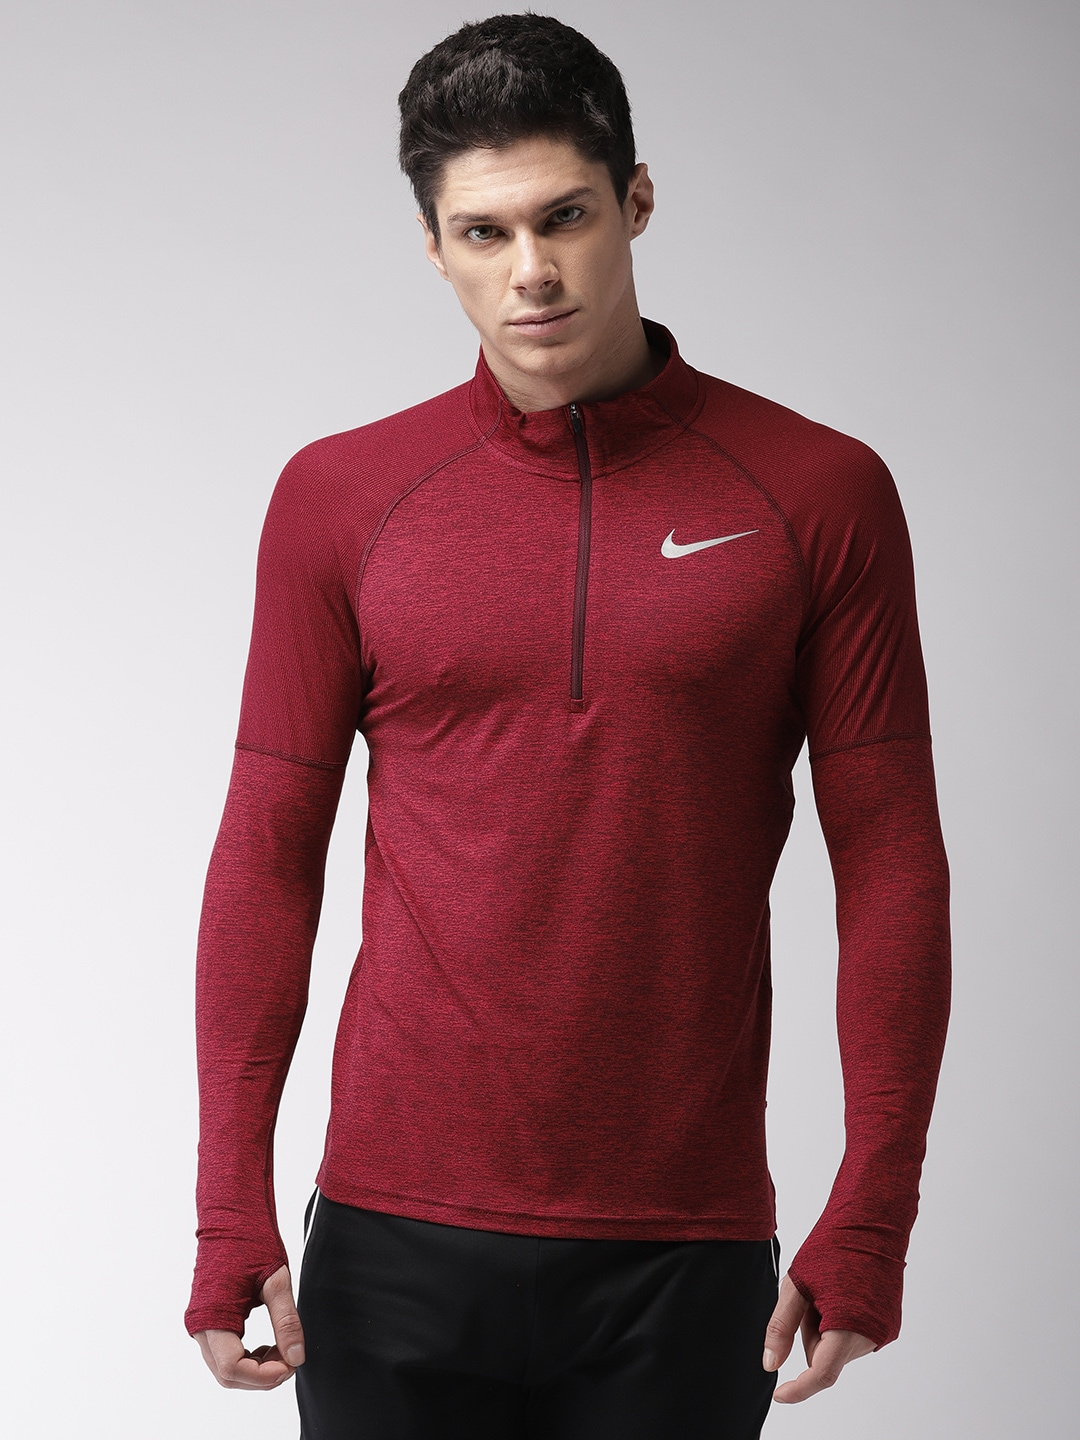 6eea80ef Nike Men Tshirt Polo Tshirts - Buy Nike Men Tshirt Polo Tshirts online in  India